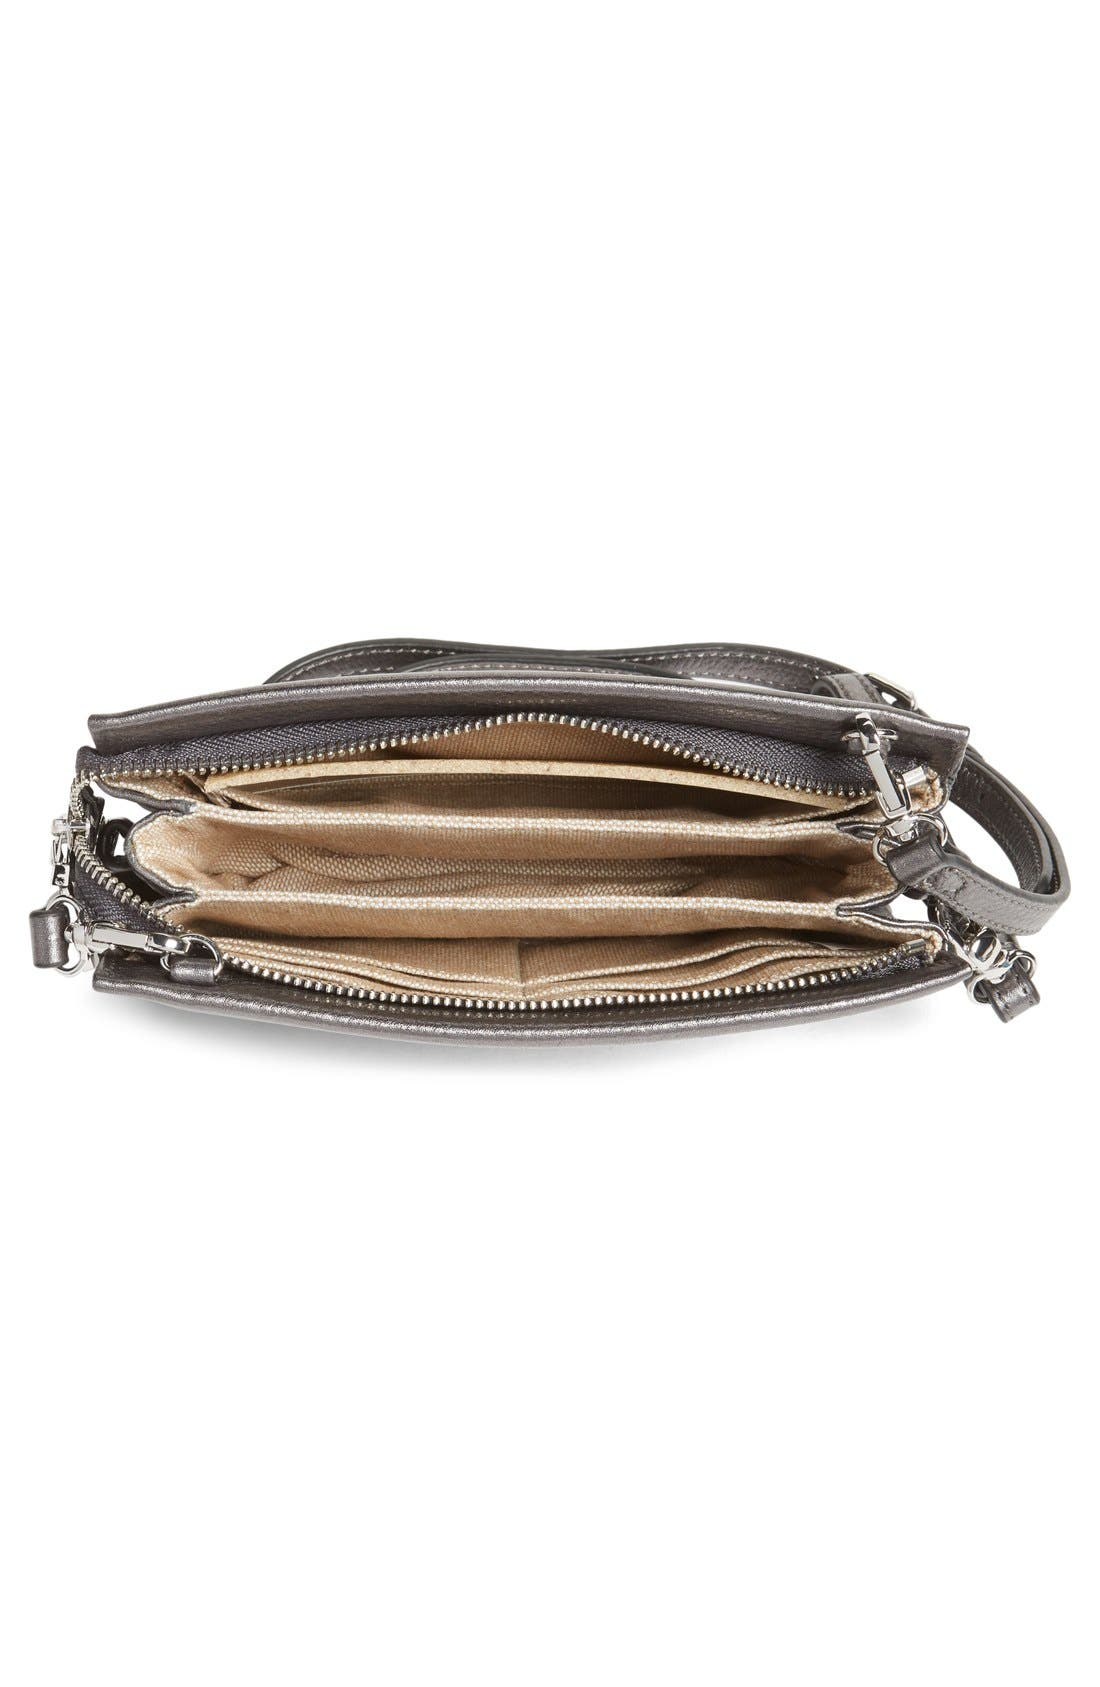 'Cami' Leather Crossbody Bag,                             Alternate thumbnail 135, color,